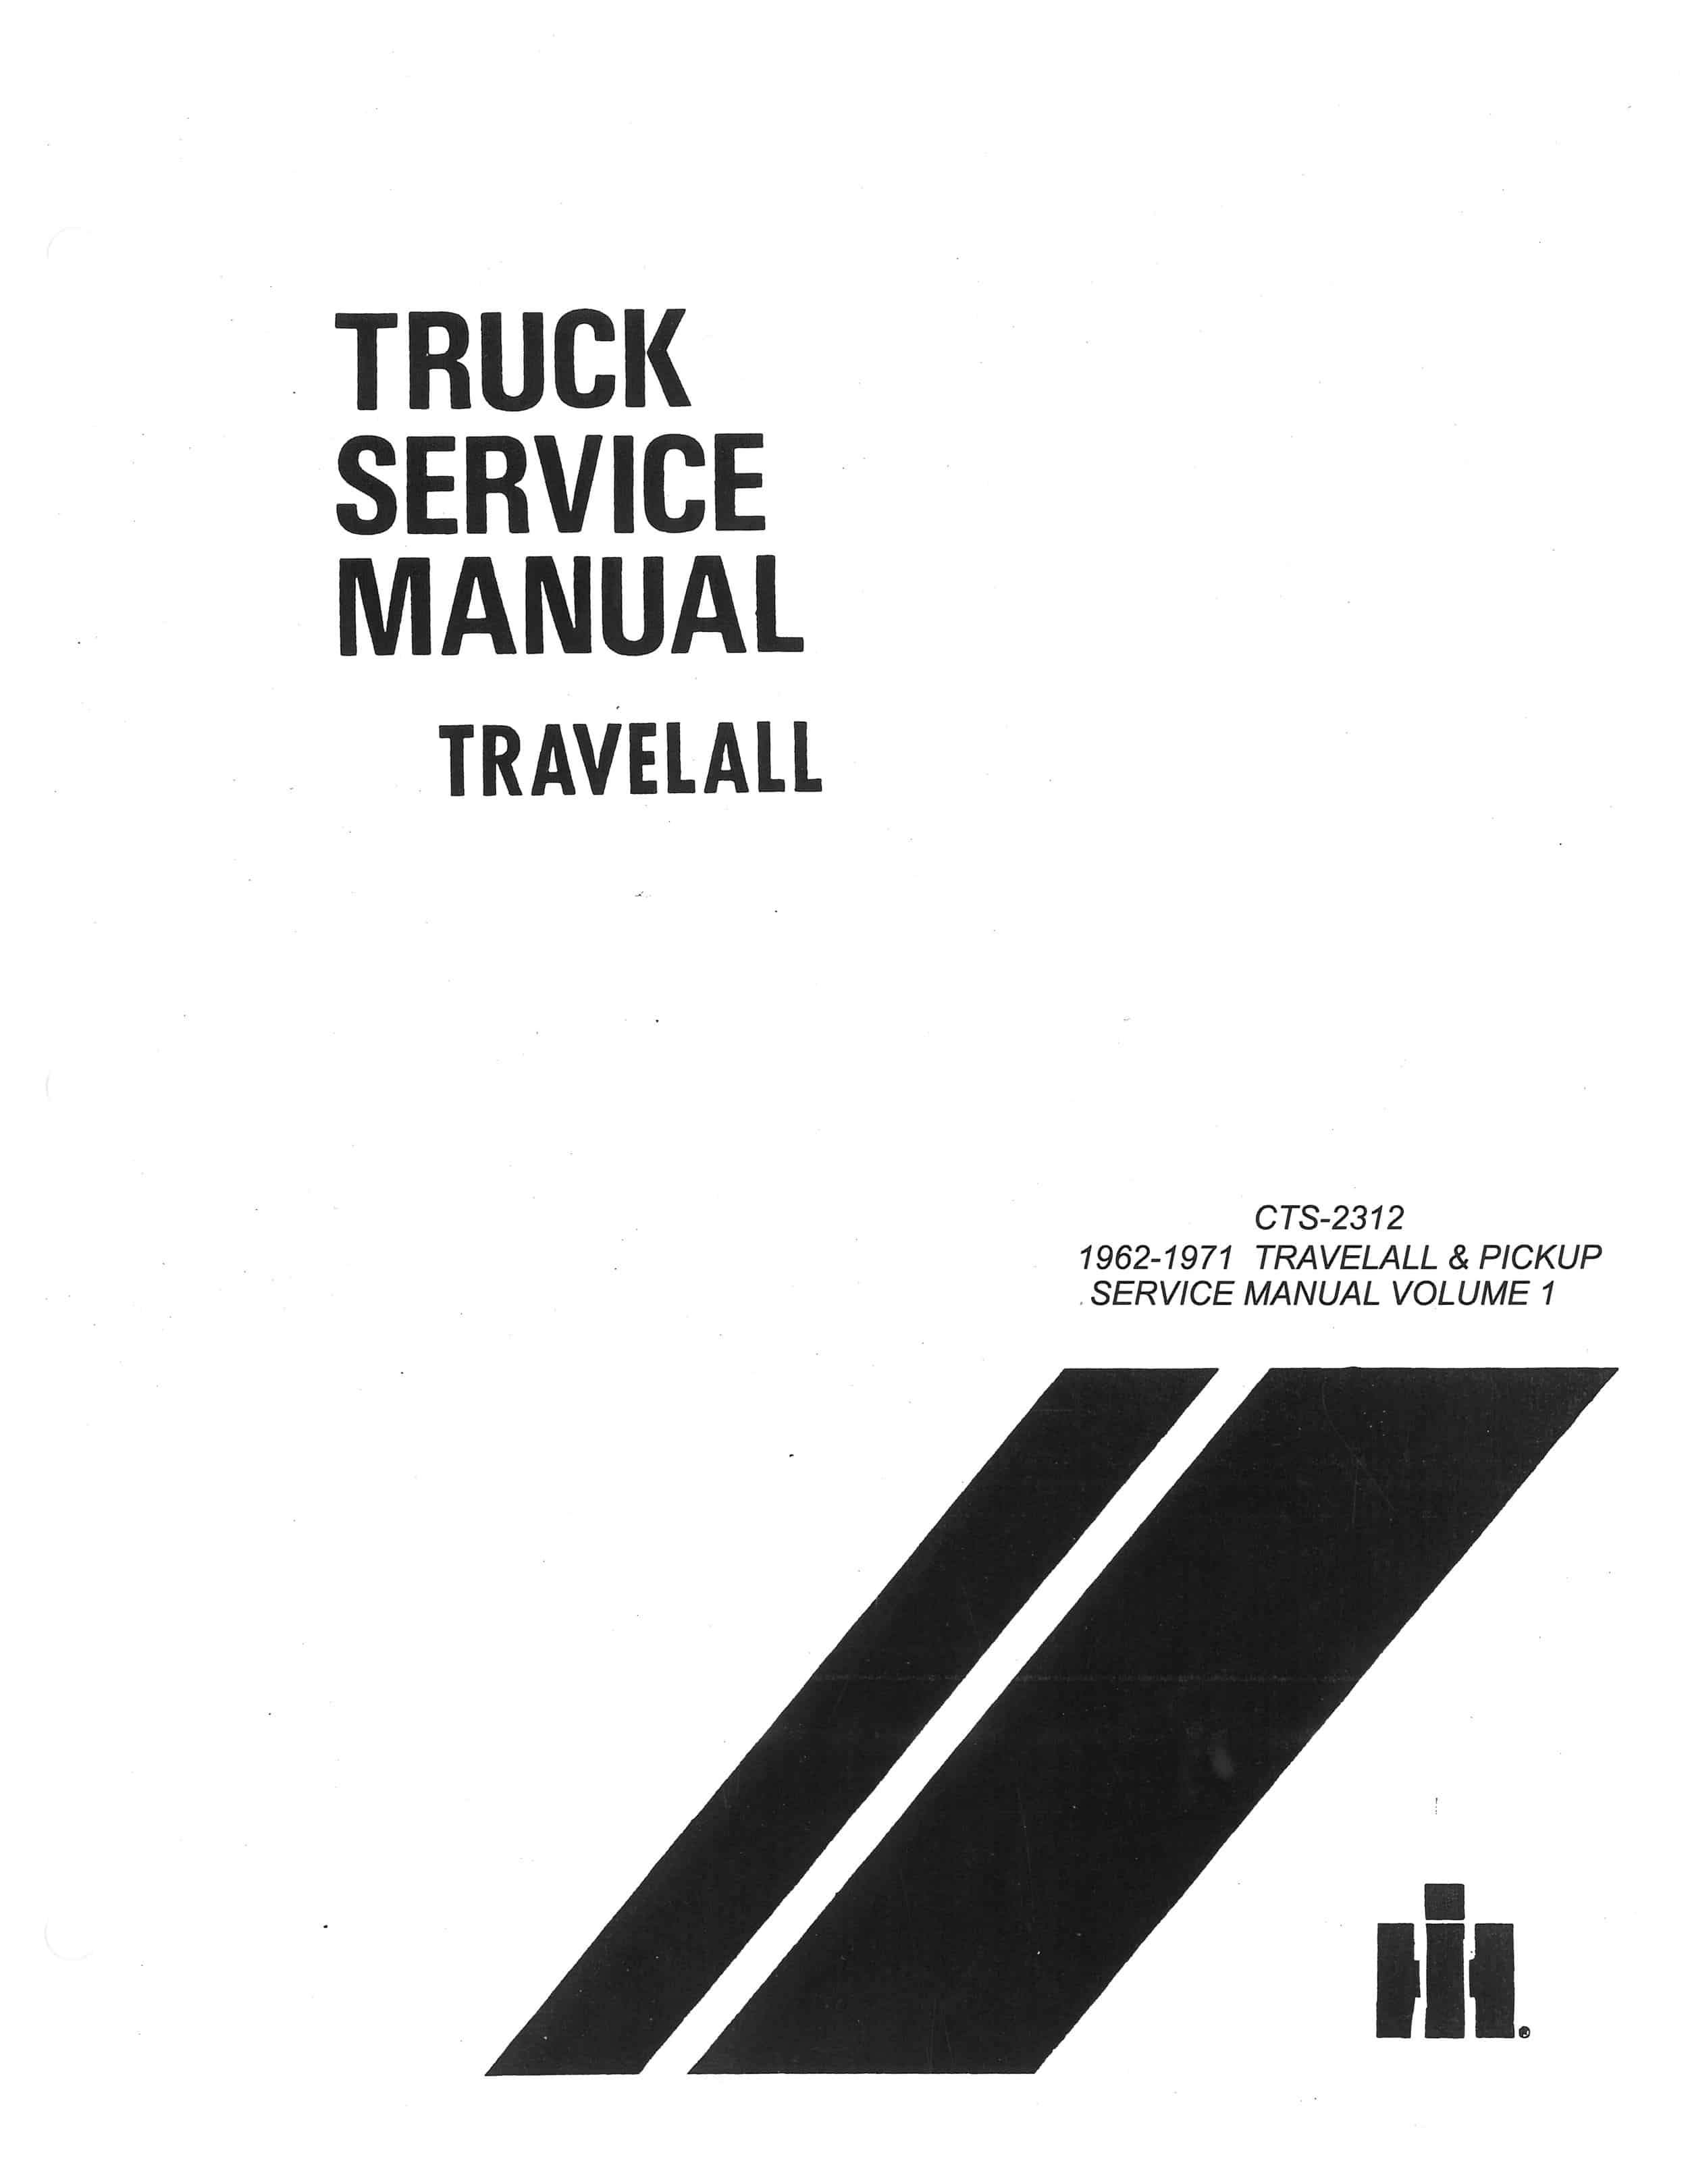 Service Manual Pickup & Travelall 1962-1971 • Old